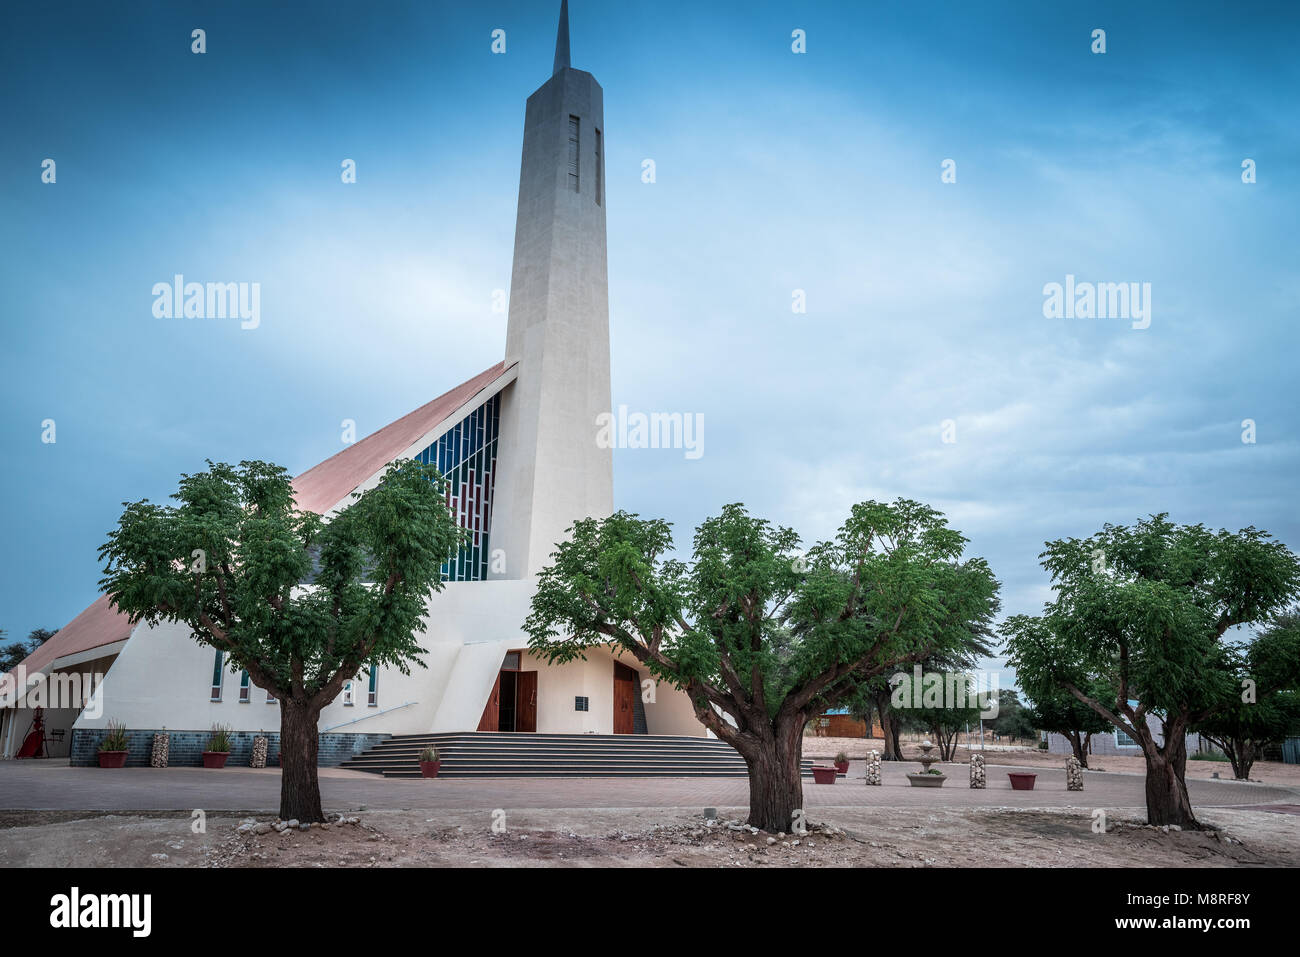 The NGK church in the small Northern Cape town of Van Zylrus in South Africa - Stock Image